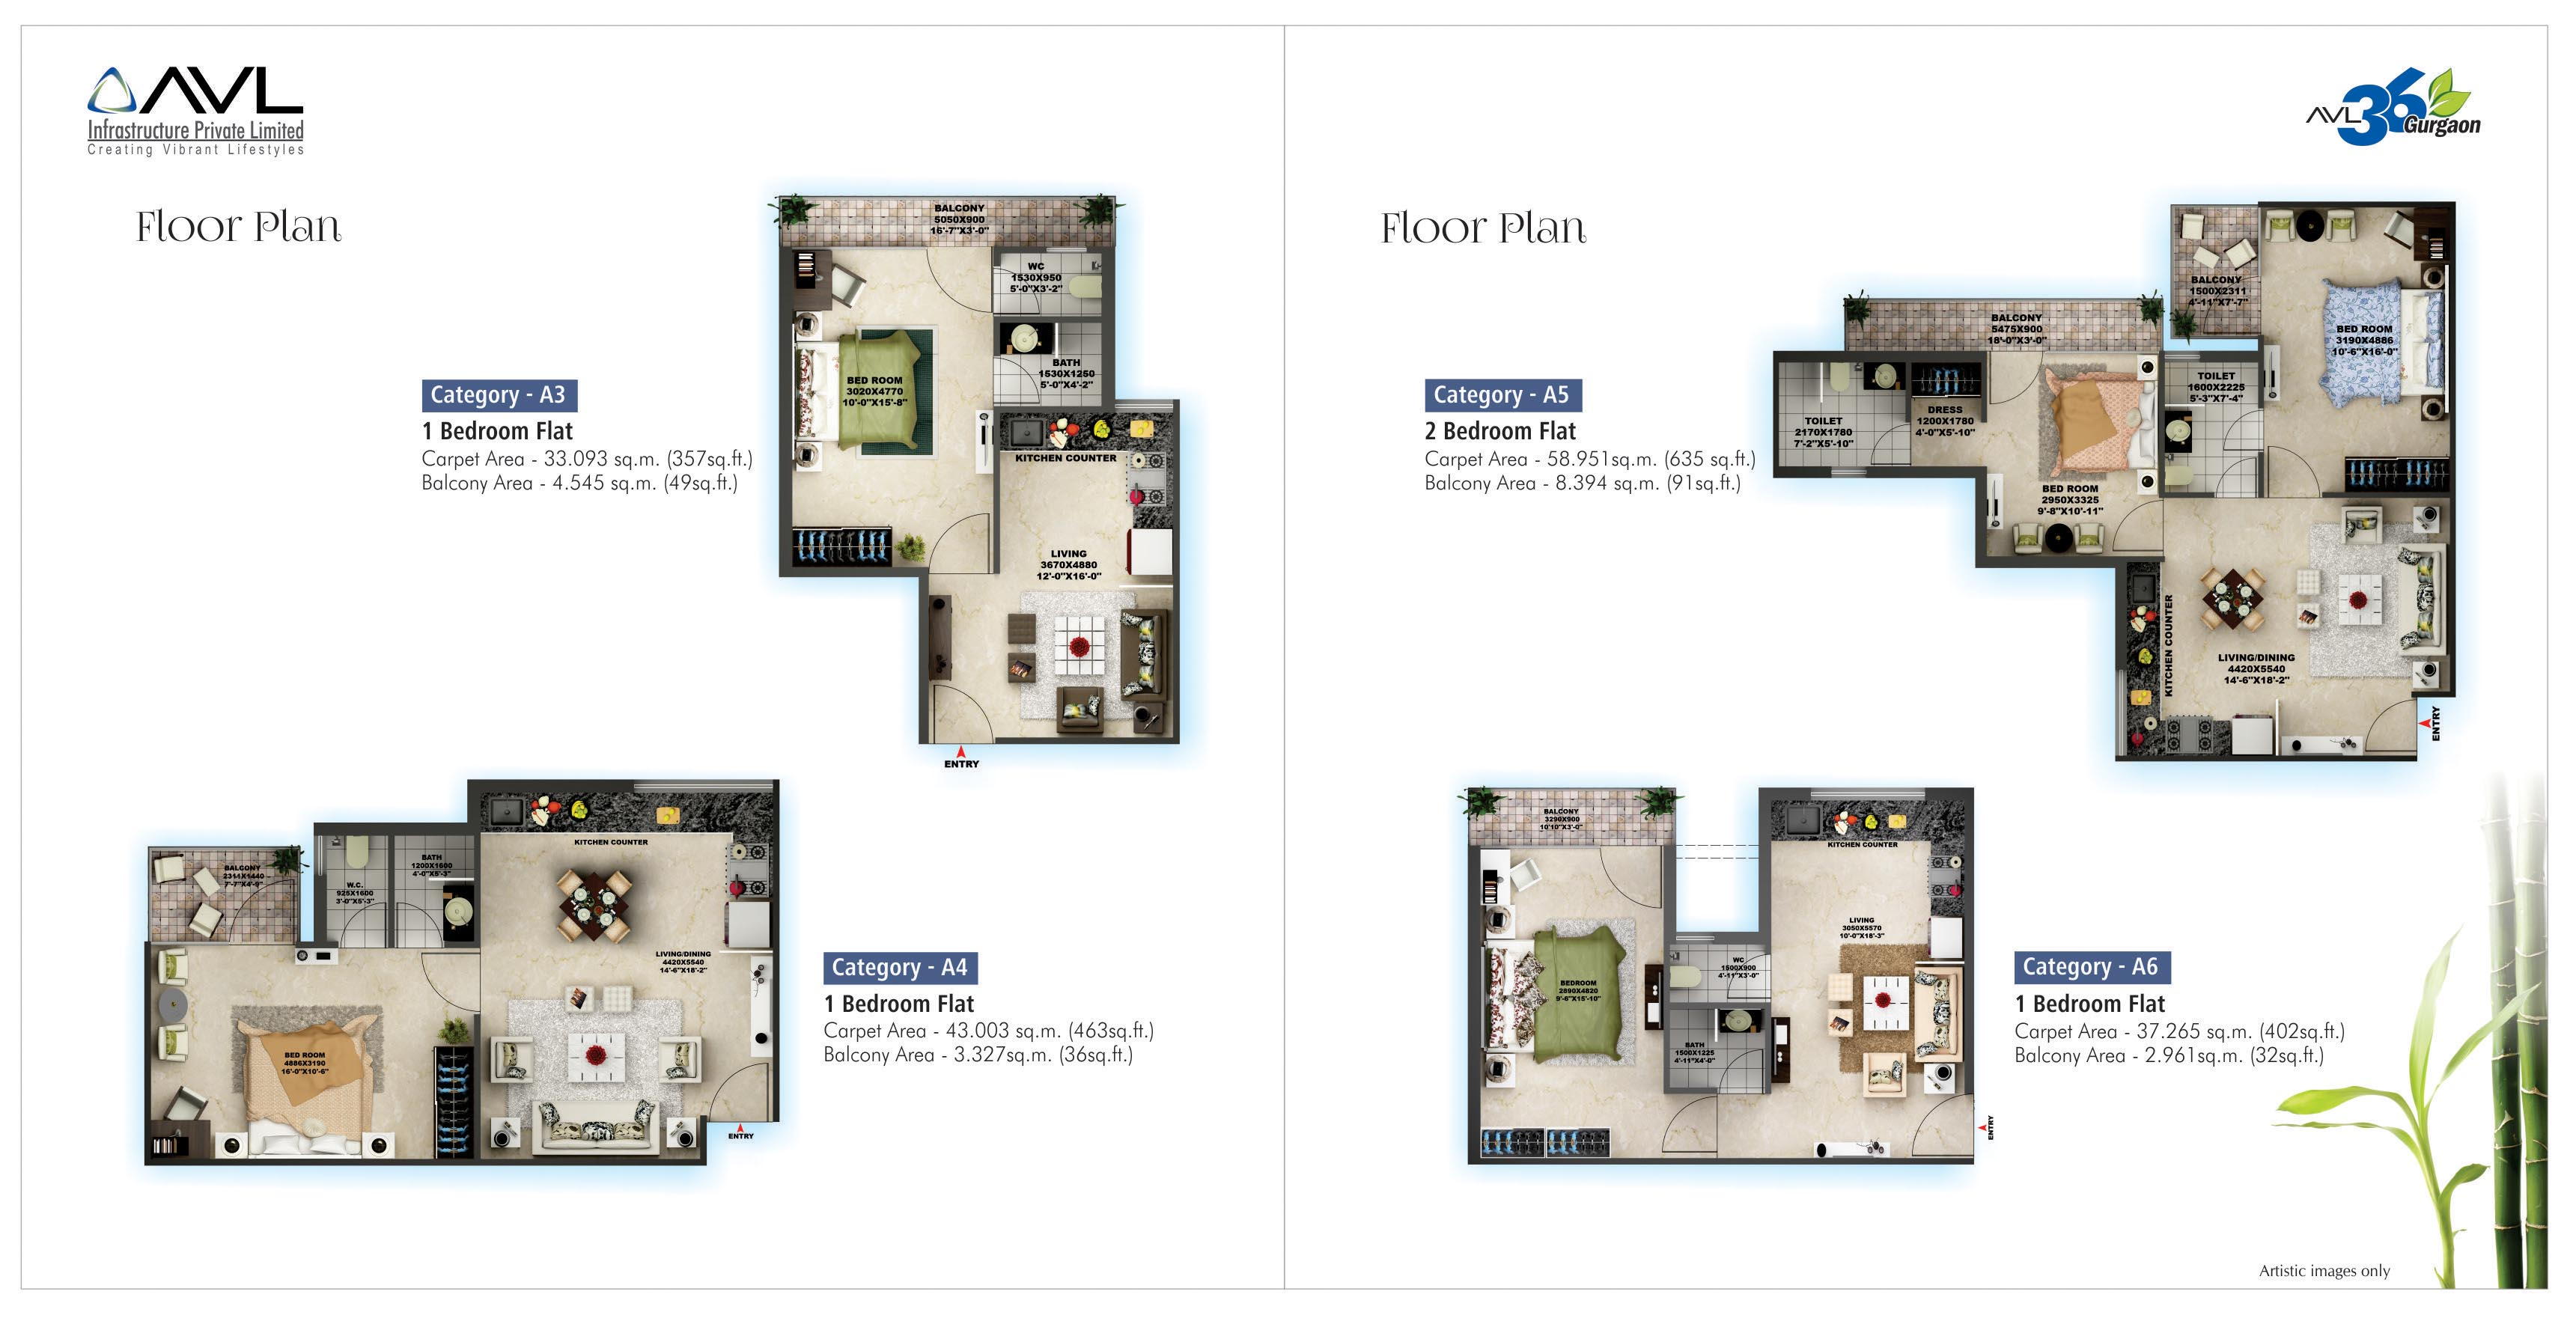 Avl36 sector 36a affordable housing project gurgaon floor plan for Floor plan project